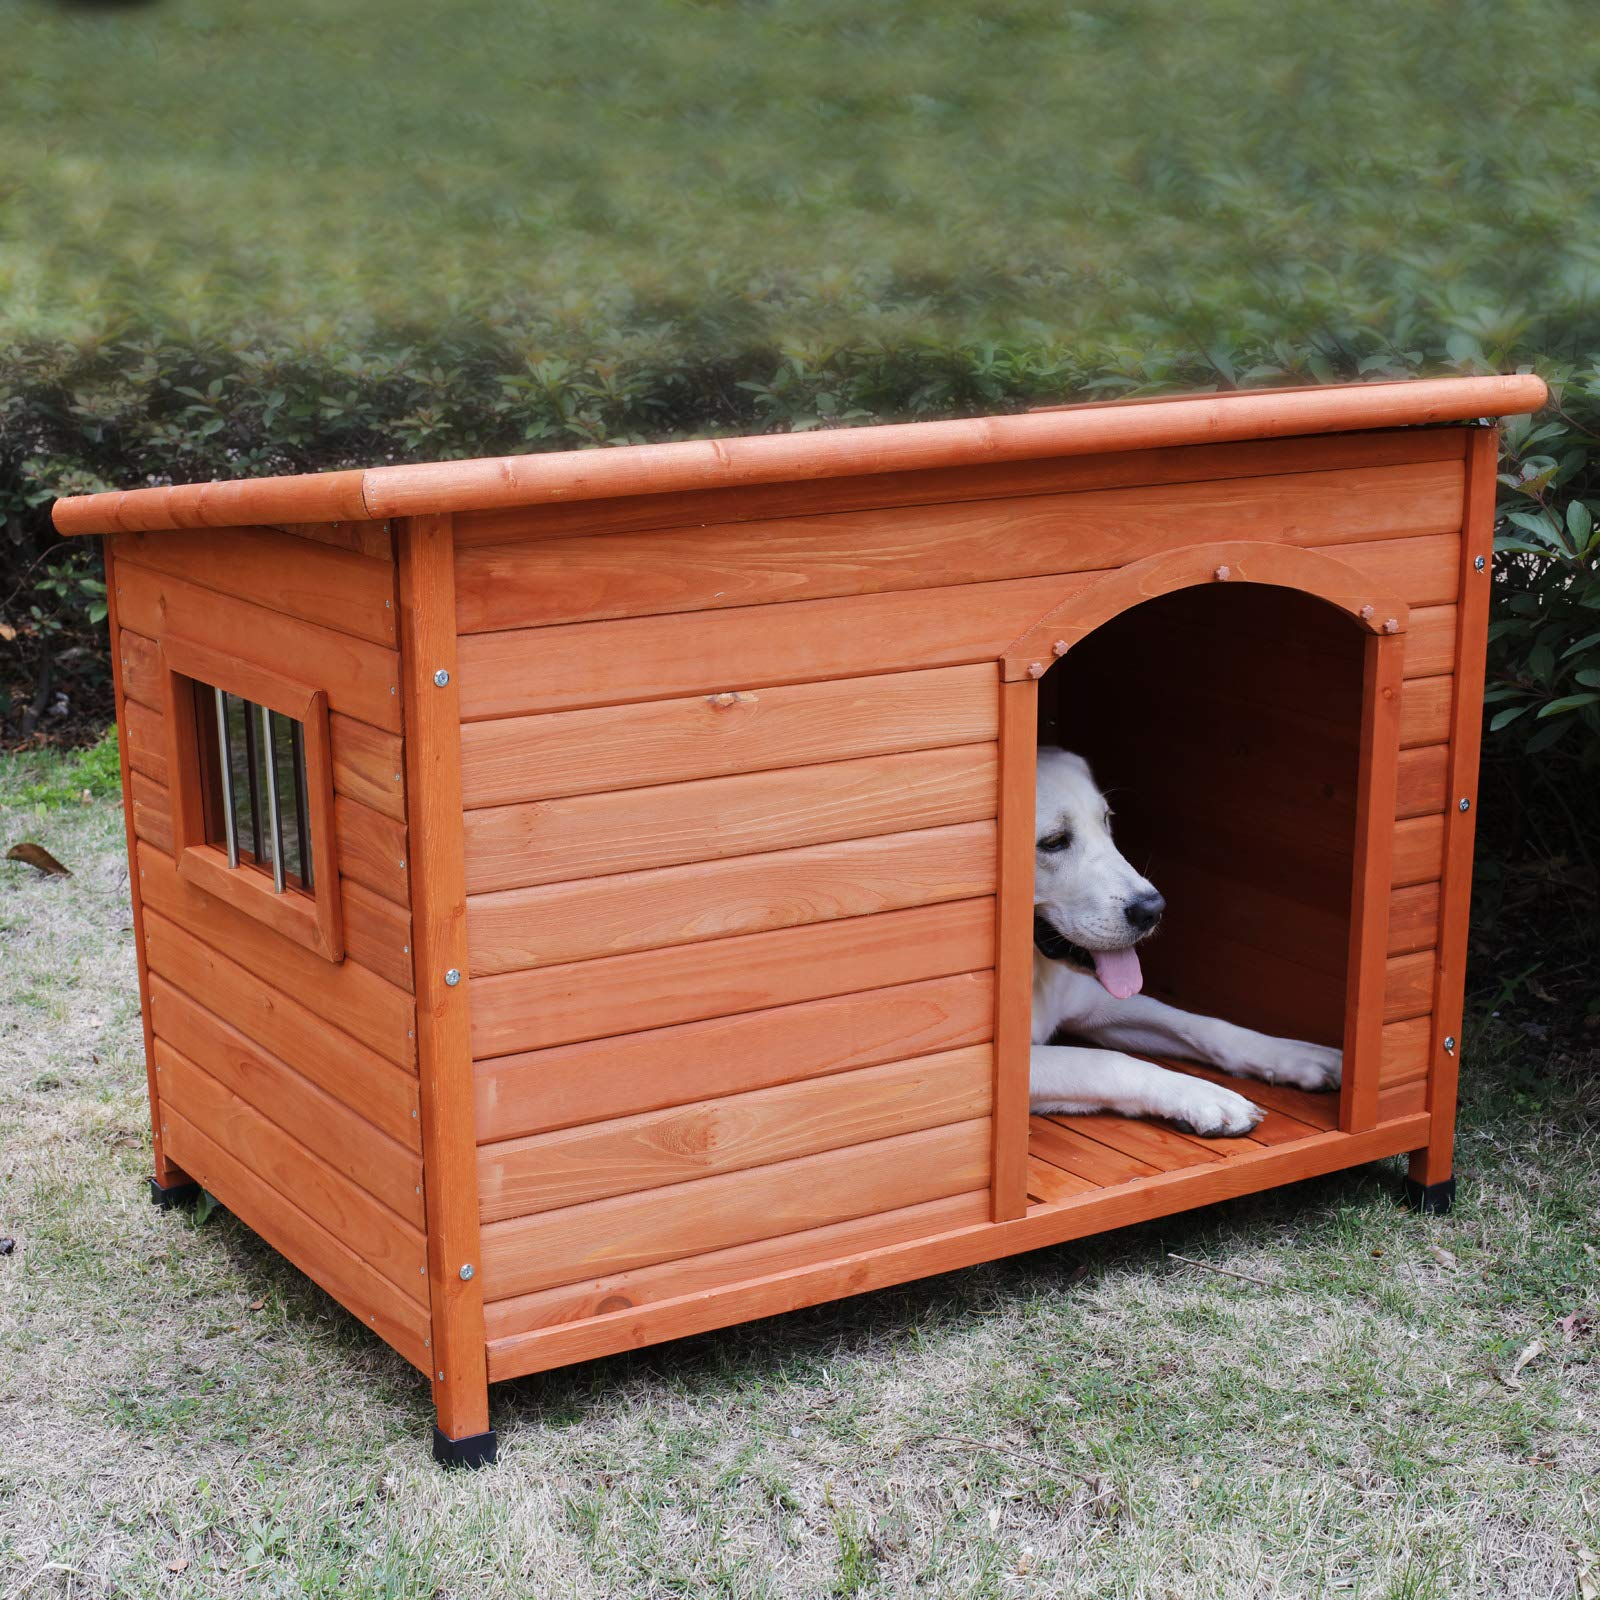 ROCKEVER Dog Houses for Small Dogs and Puppies Outdoor Wood Weatherproof Outside Wooden Puppy Houses Insulated